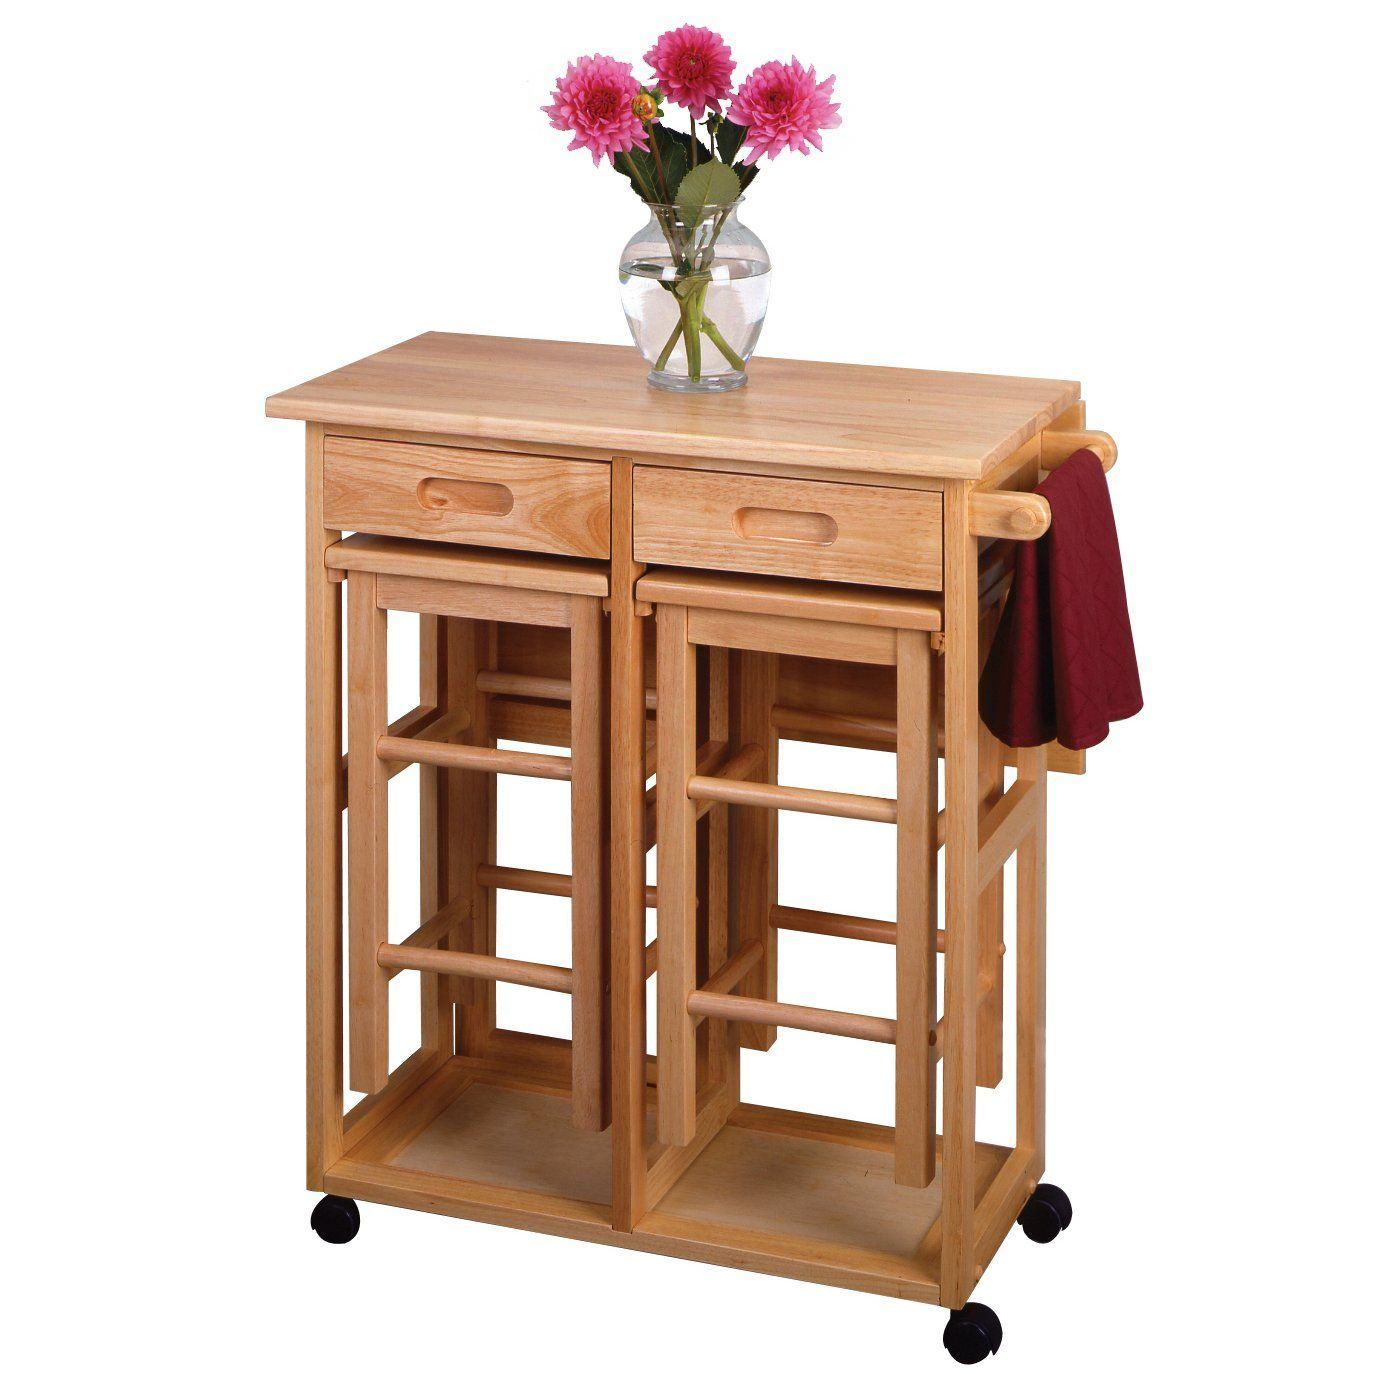 Collapsible Kitchen Table And Chairs Shop Winsome Wood 89330 Space Saver  Drop Leaf Kitchen Cart With